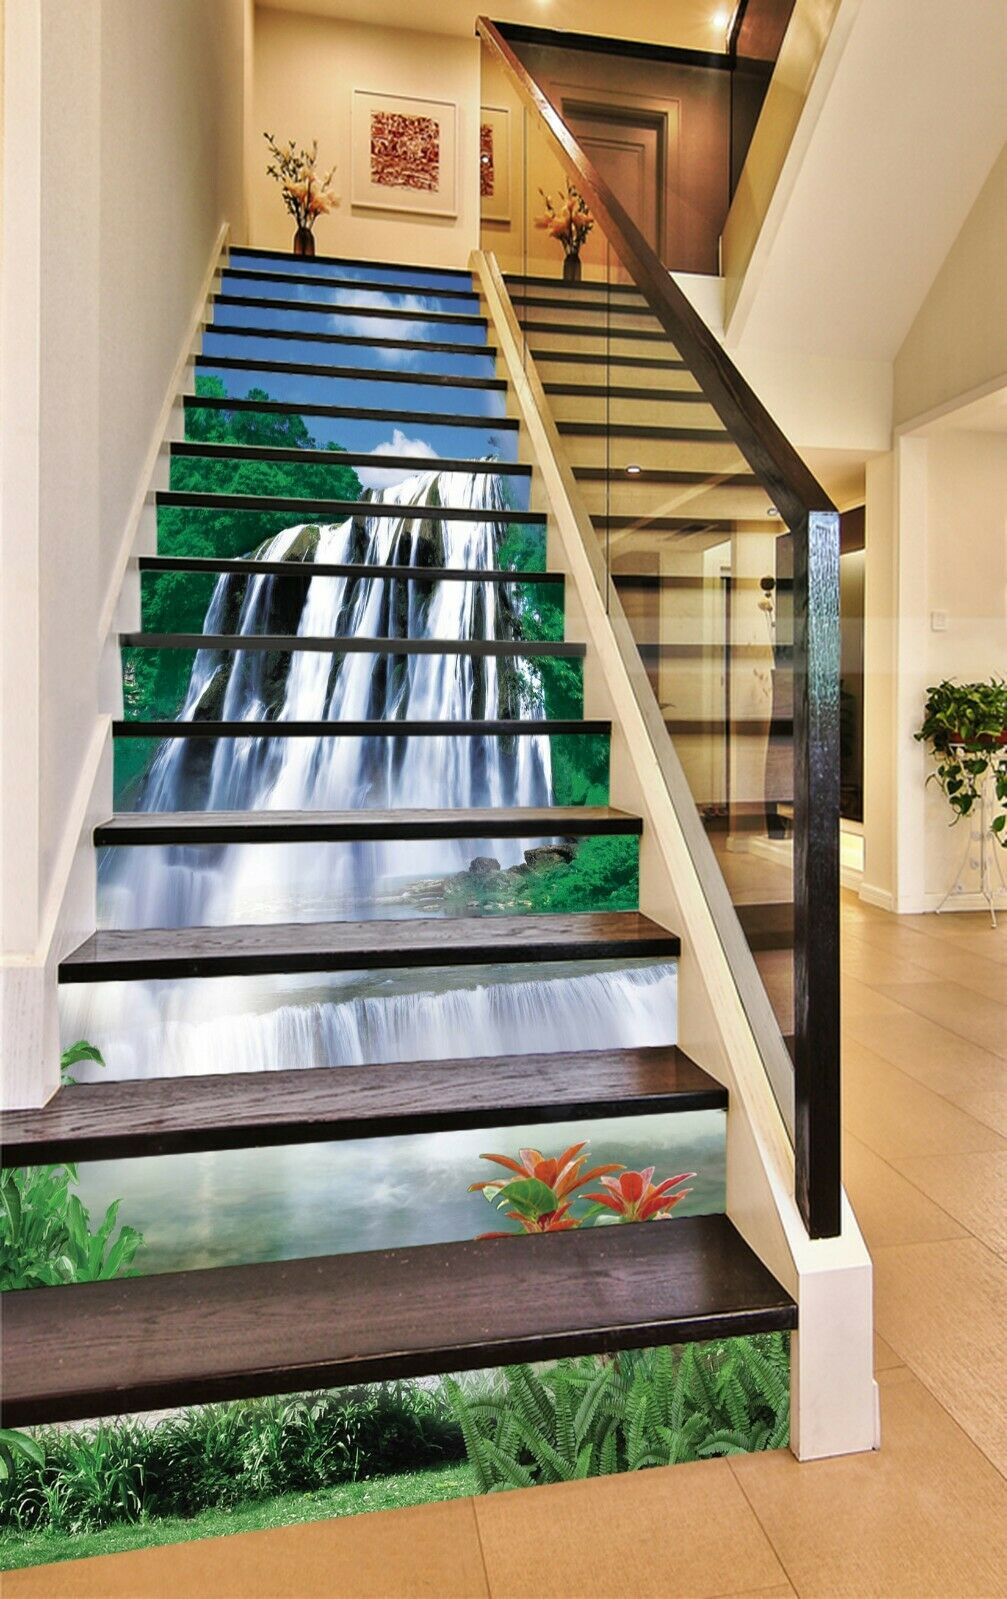 3D Waterfall Scenery KE9433 Stair Risers Decoration Mural Vinyl Wallpaper Kay